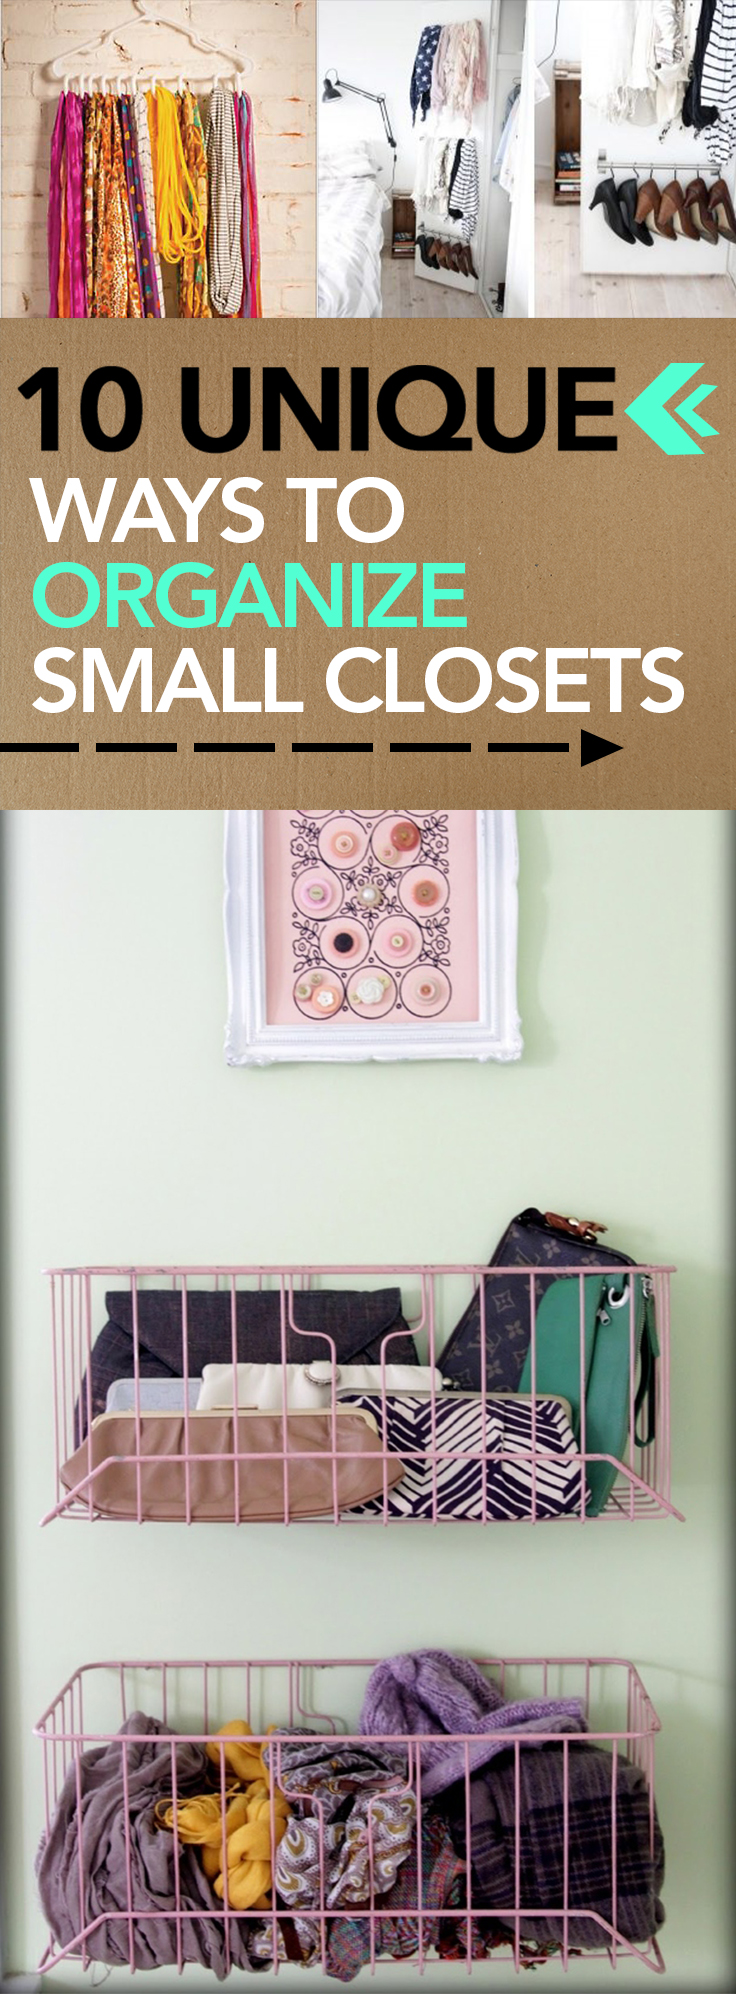 10 Unique Ways to Organize Small Closets